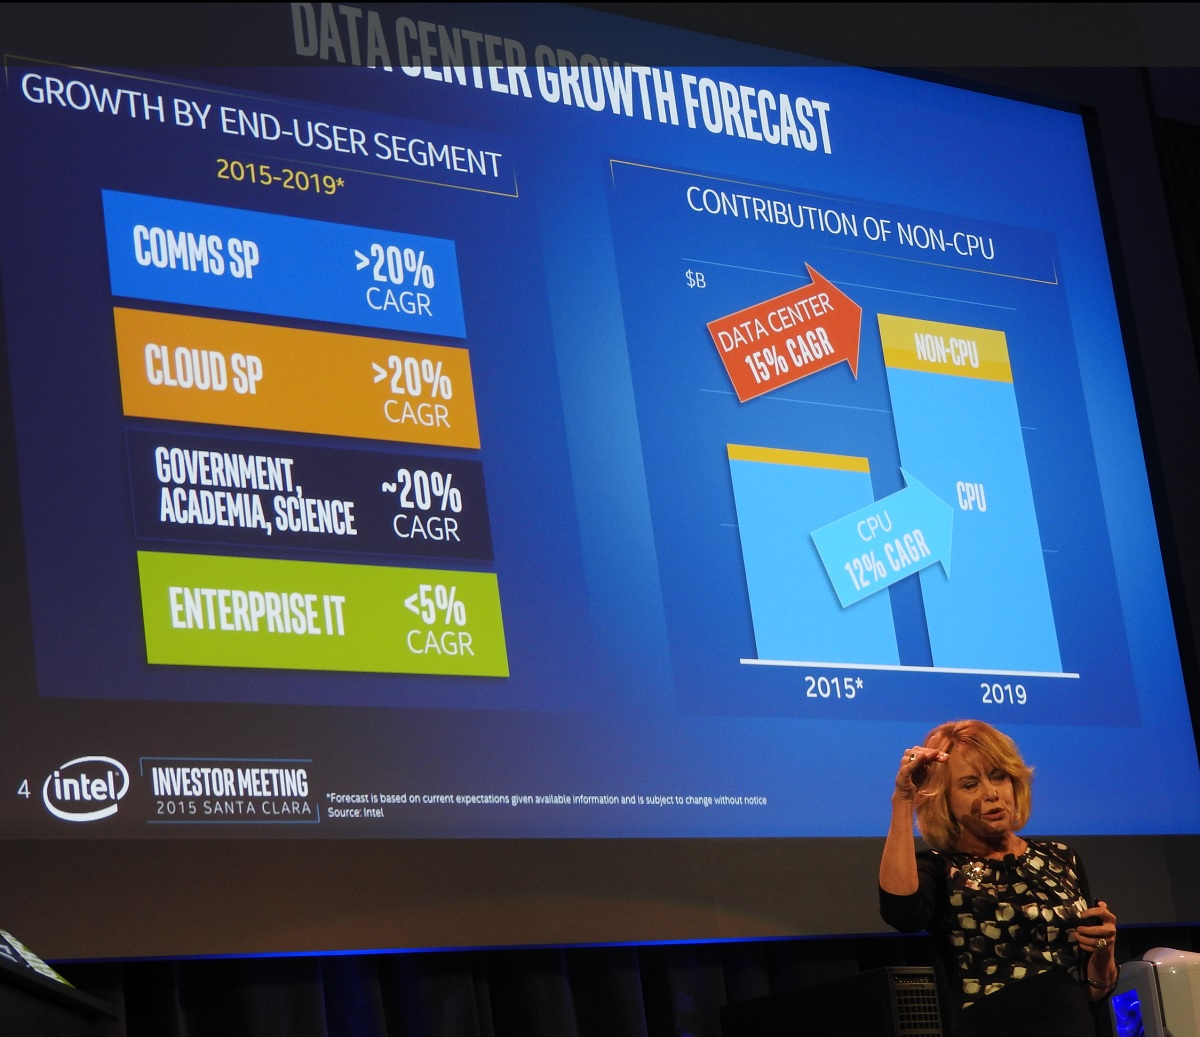 Intel projects data center revenue to grow 15 percent a year